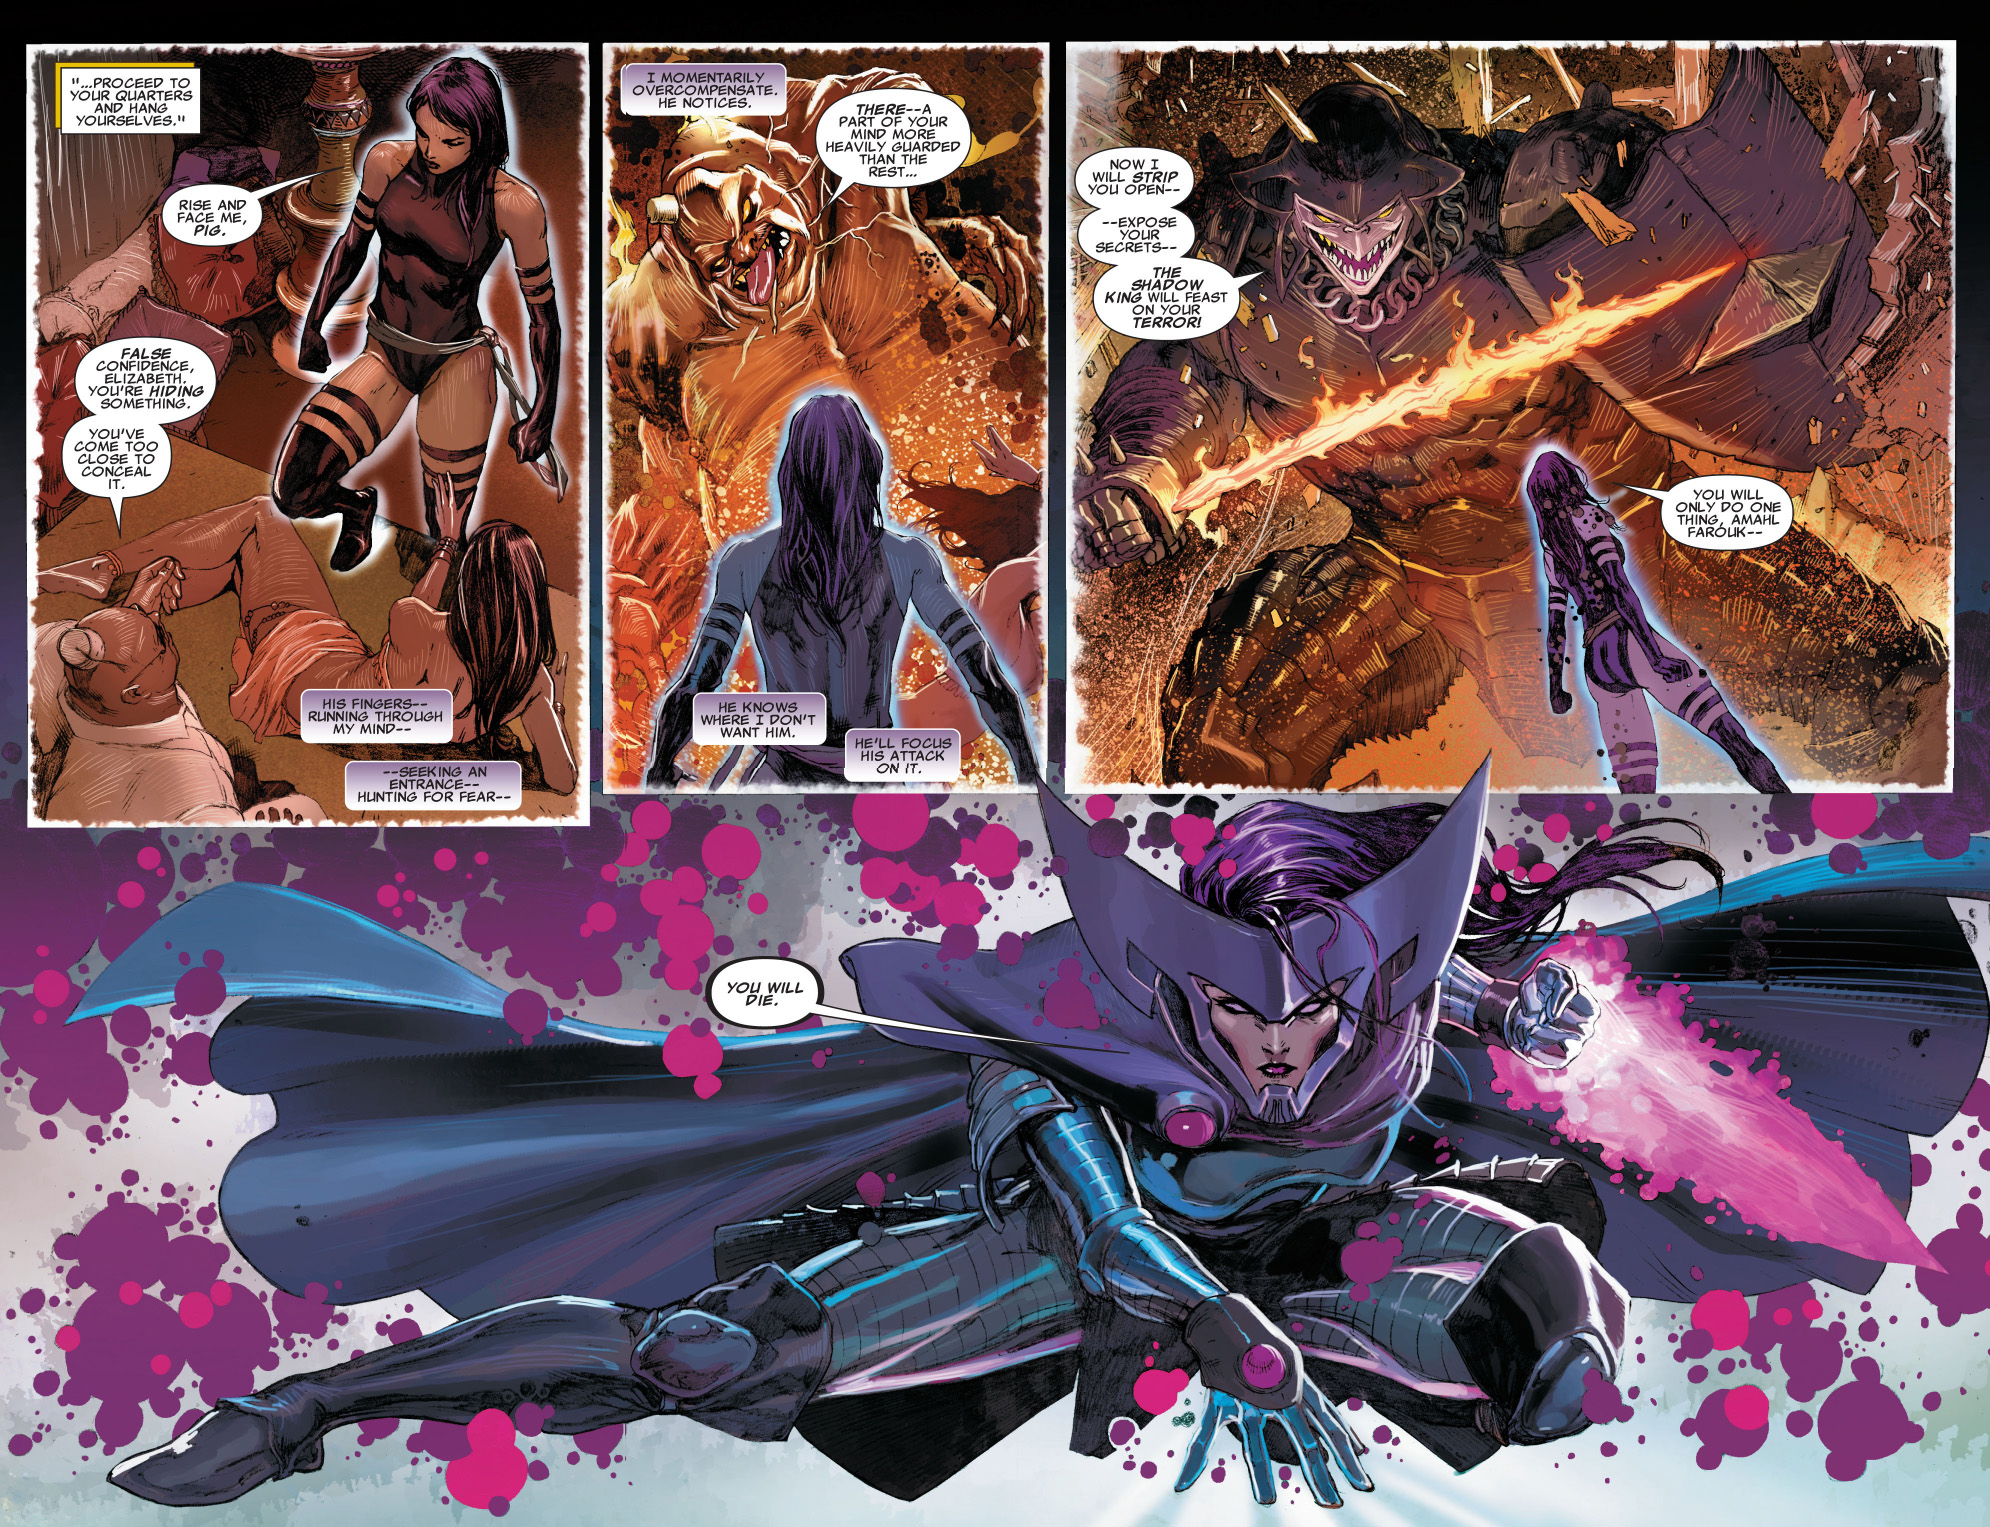 psylocke vs the shadow king